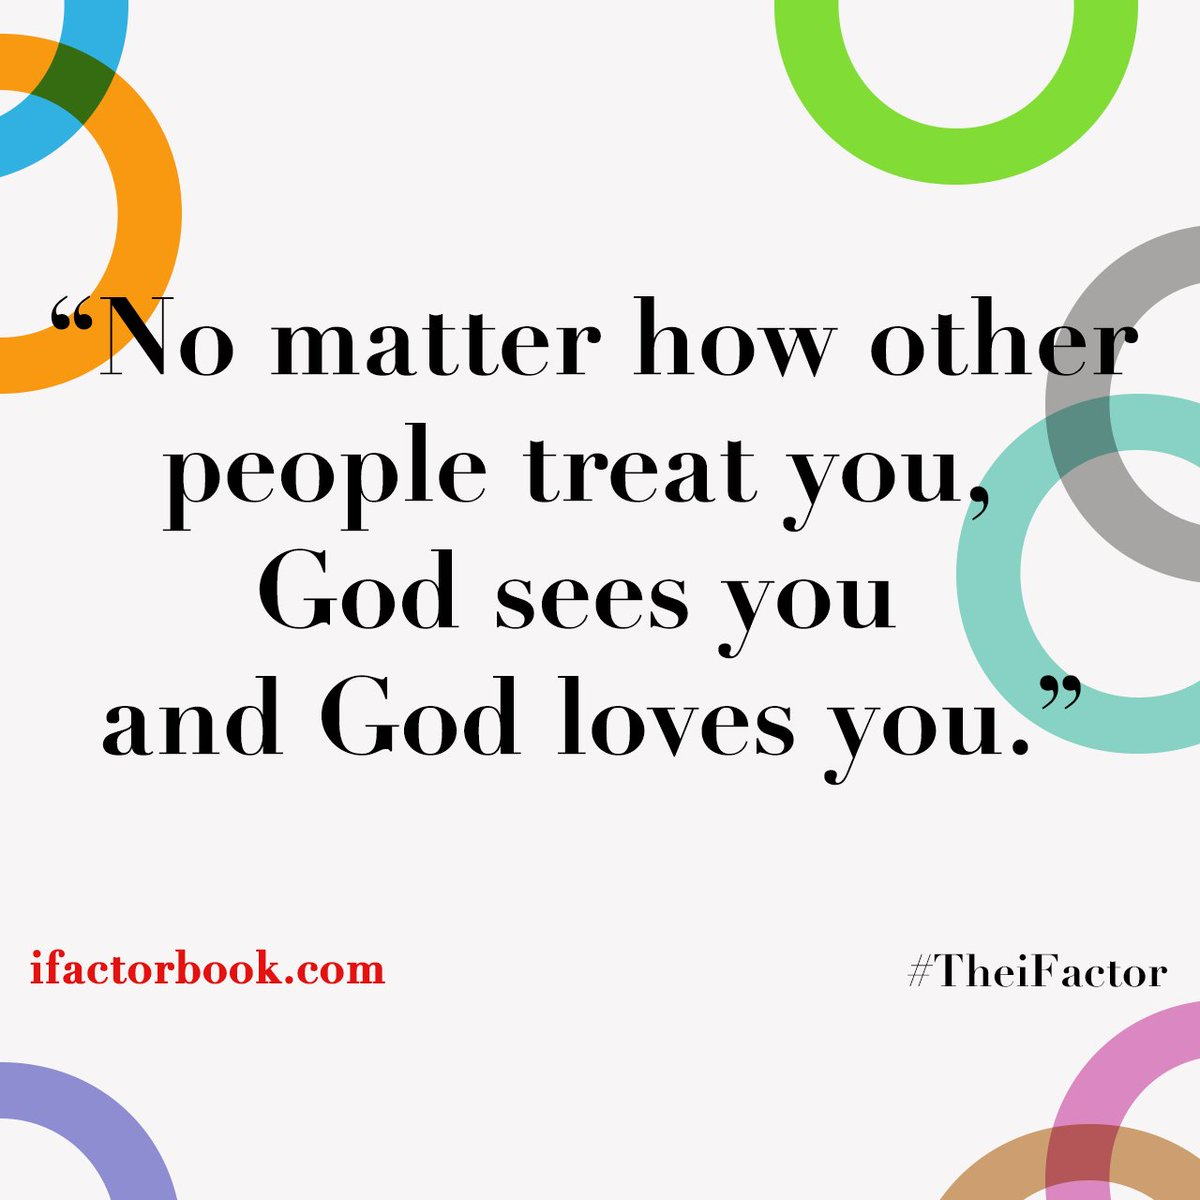 van moody on twitter good morning never forget that god loves you httpstcocavggiaqbv theifactor